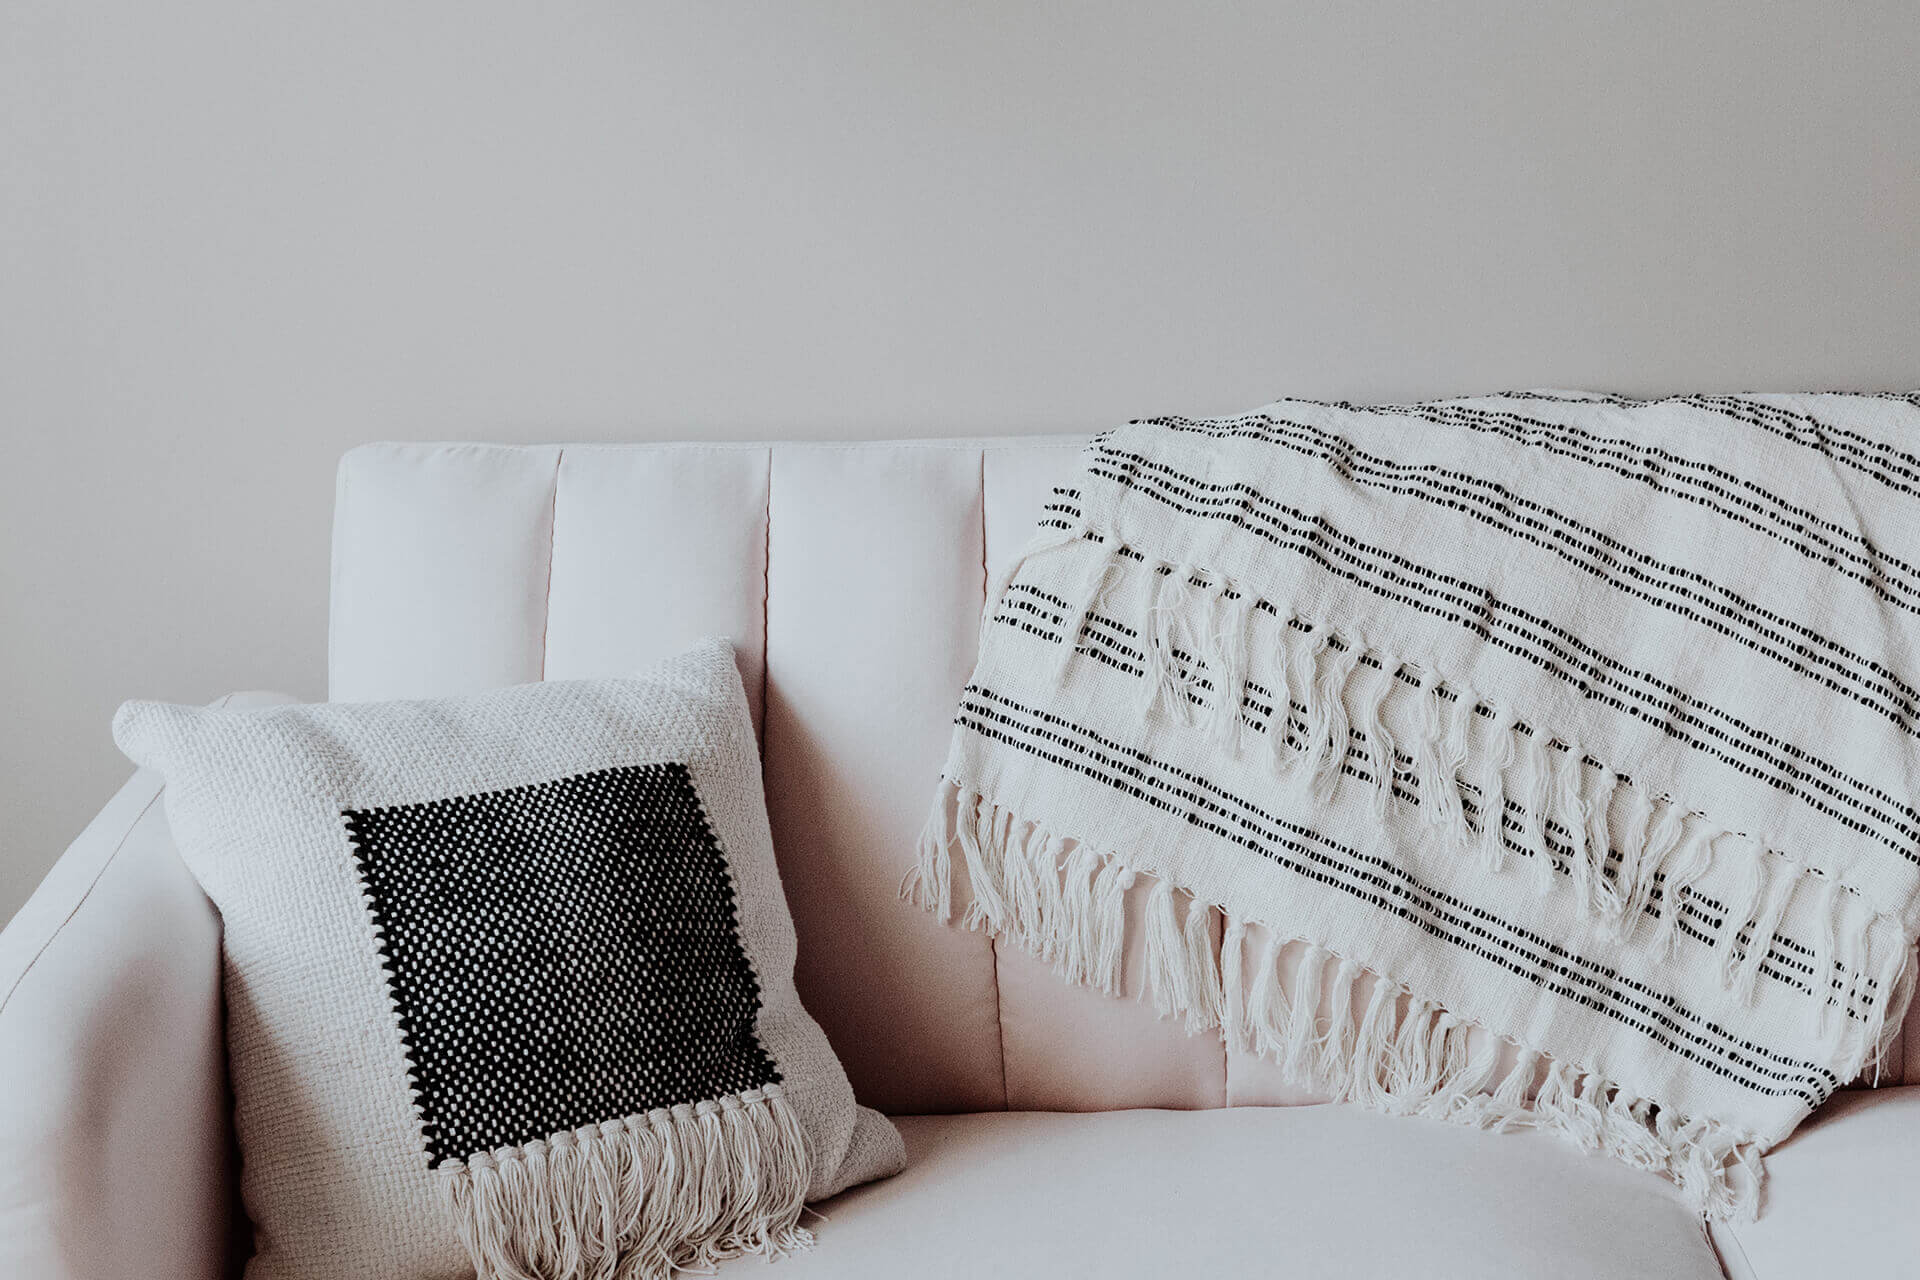 Comfortable couch, pillow and blanket welcome individual therapy clients that seek treatment with different therapeutic approaches.